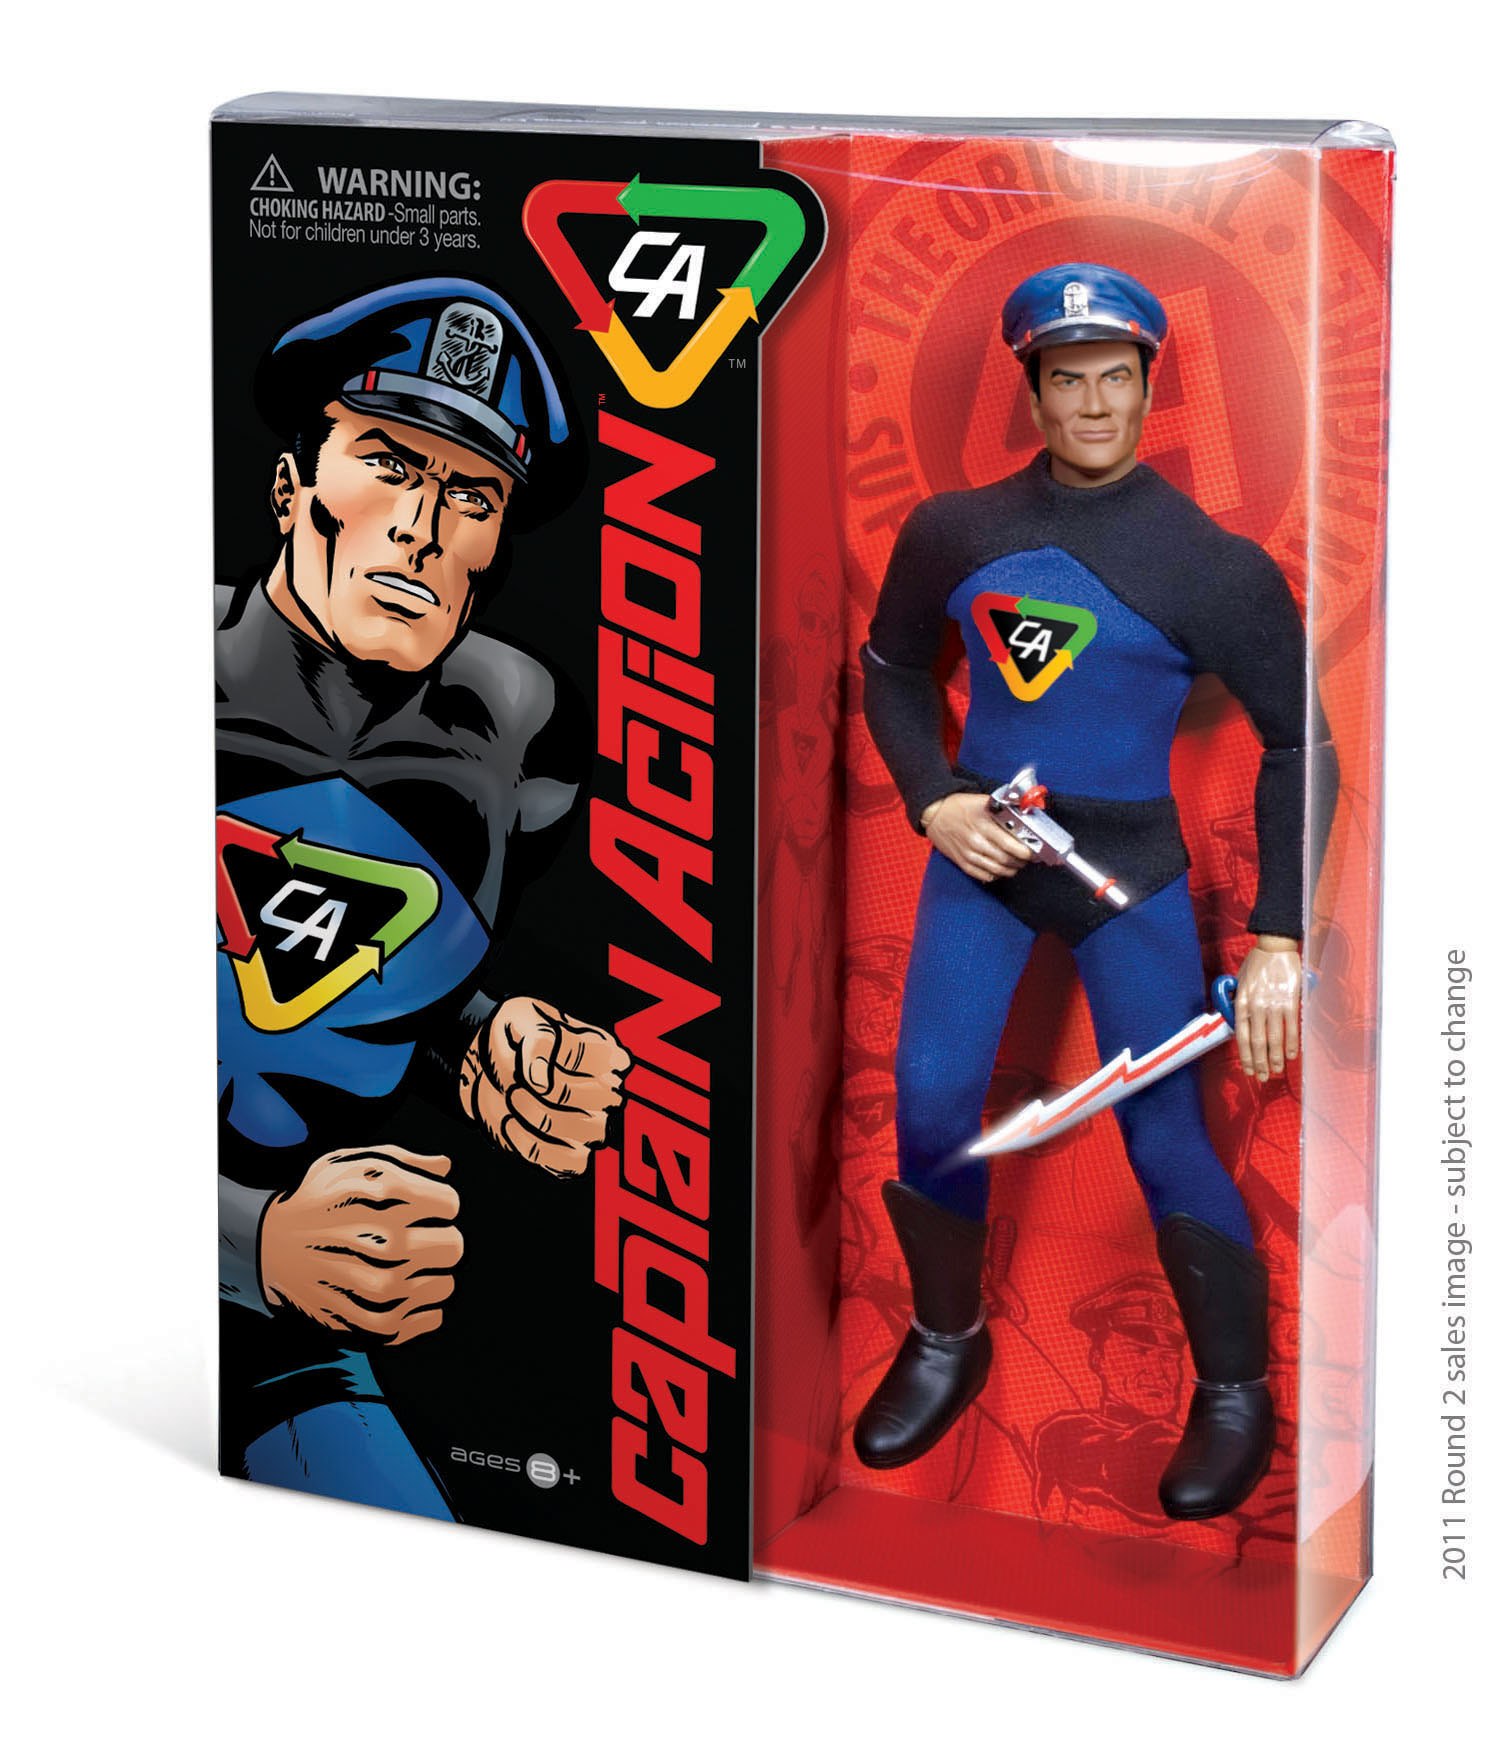 Official Press release – Captain Action and Round 2 Announce Toy Line